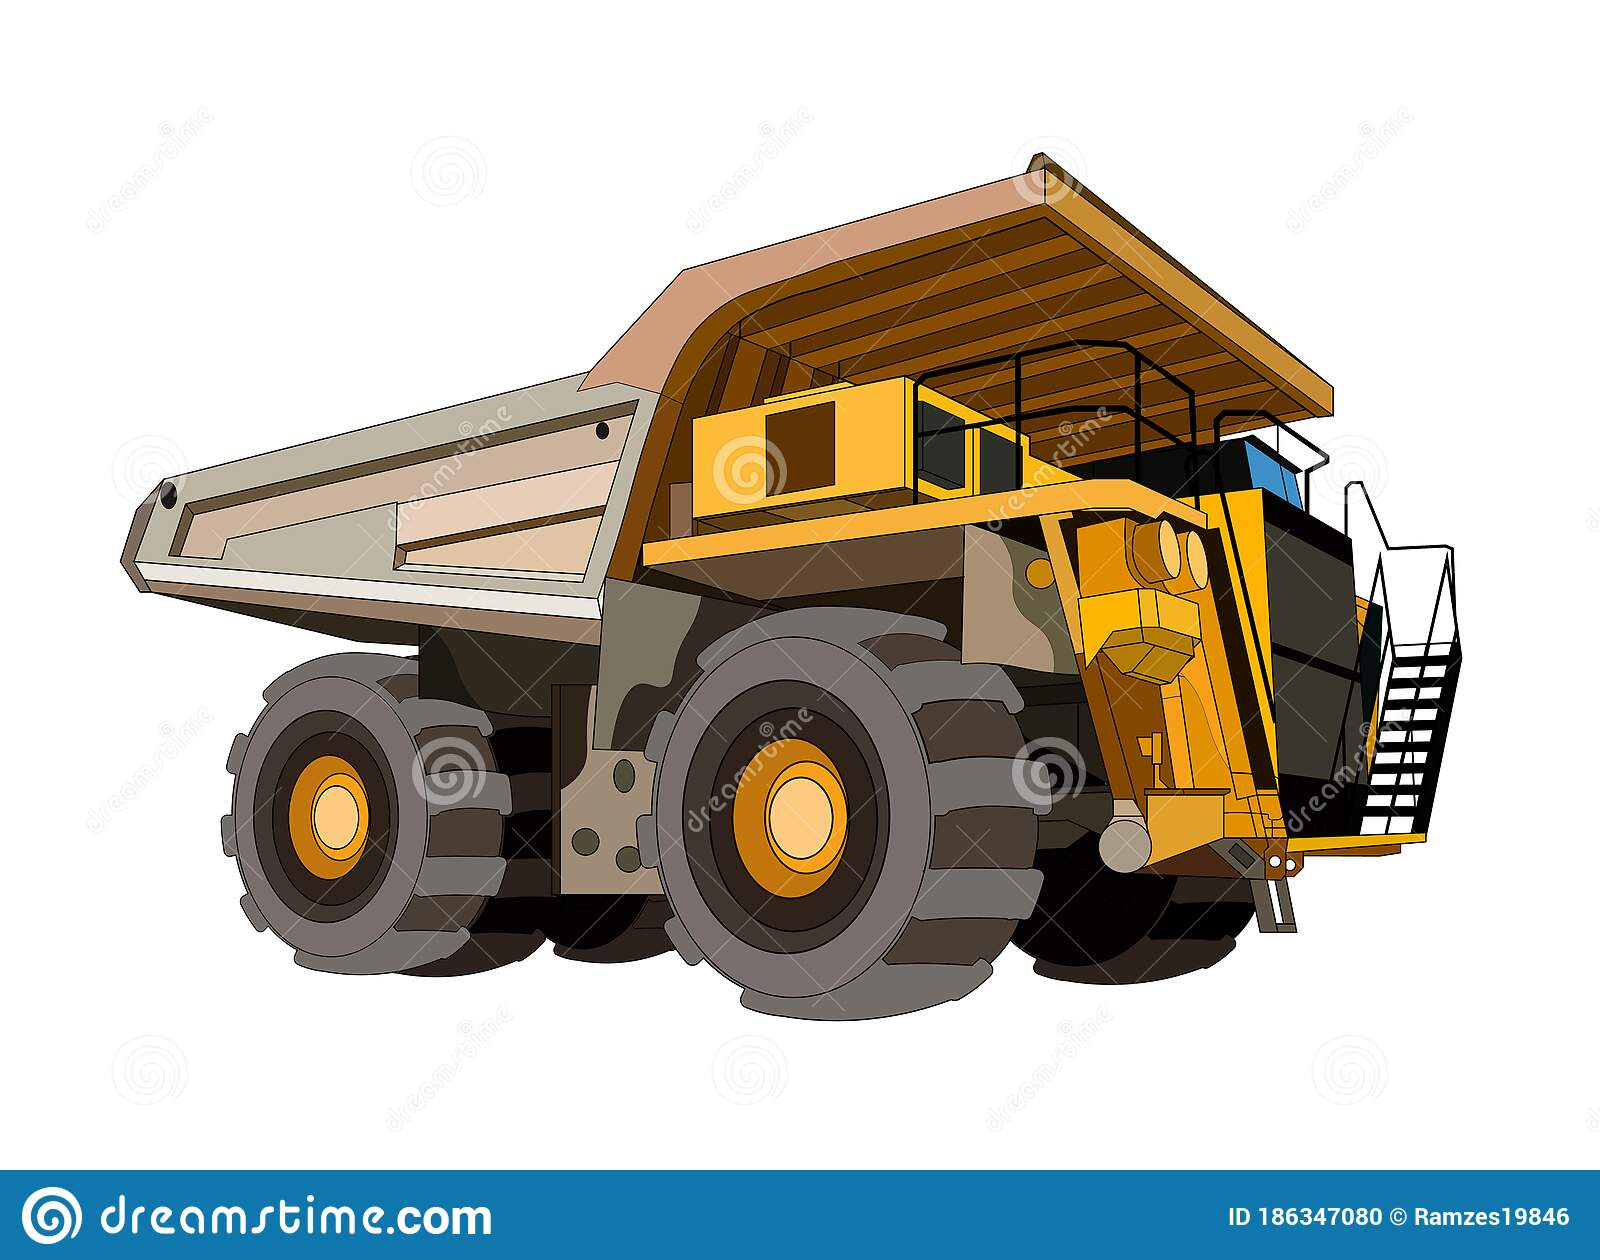 Heavy Construction Equipment Dump Mining Truck In Yellow Black. Industrial  Machinery And Equipment. Isolated Vector On White Stock Vector -  Illustration of dirt, dozer: 186347080